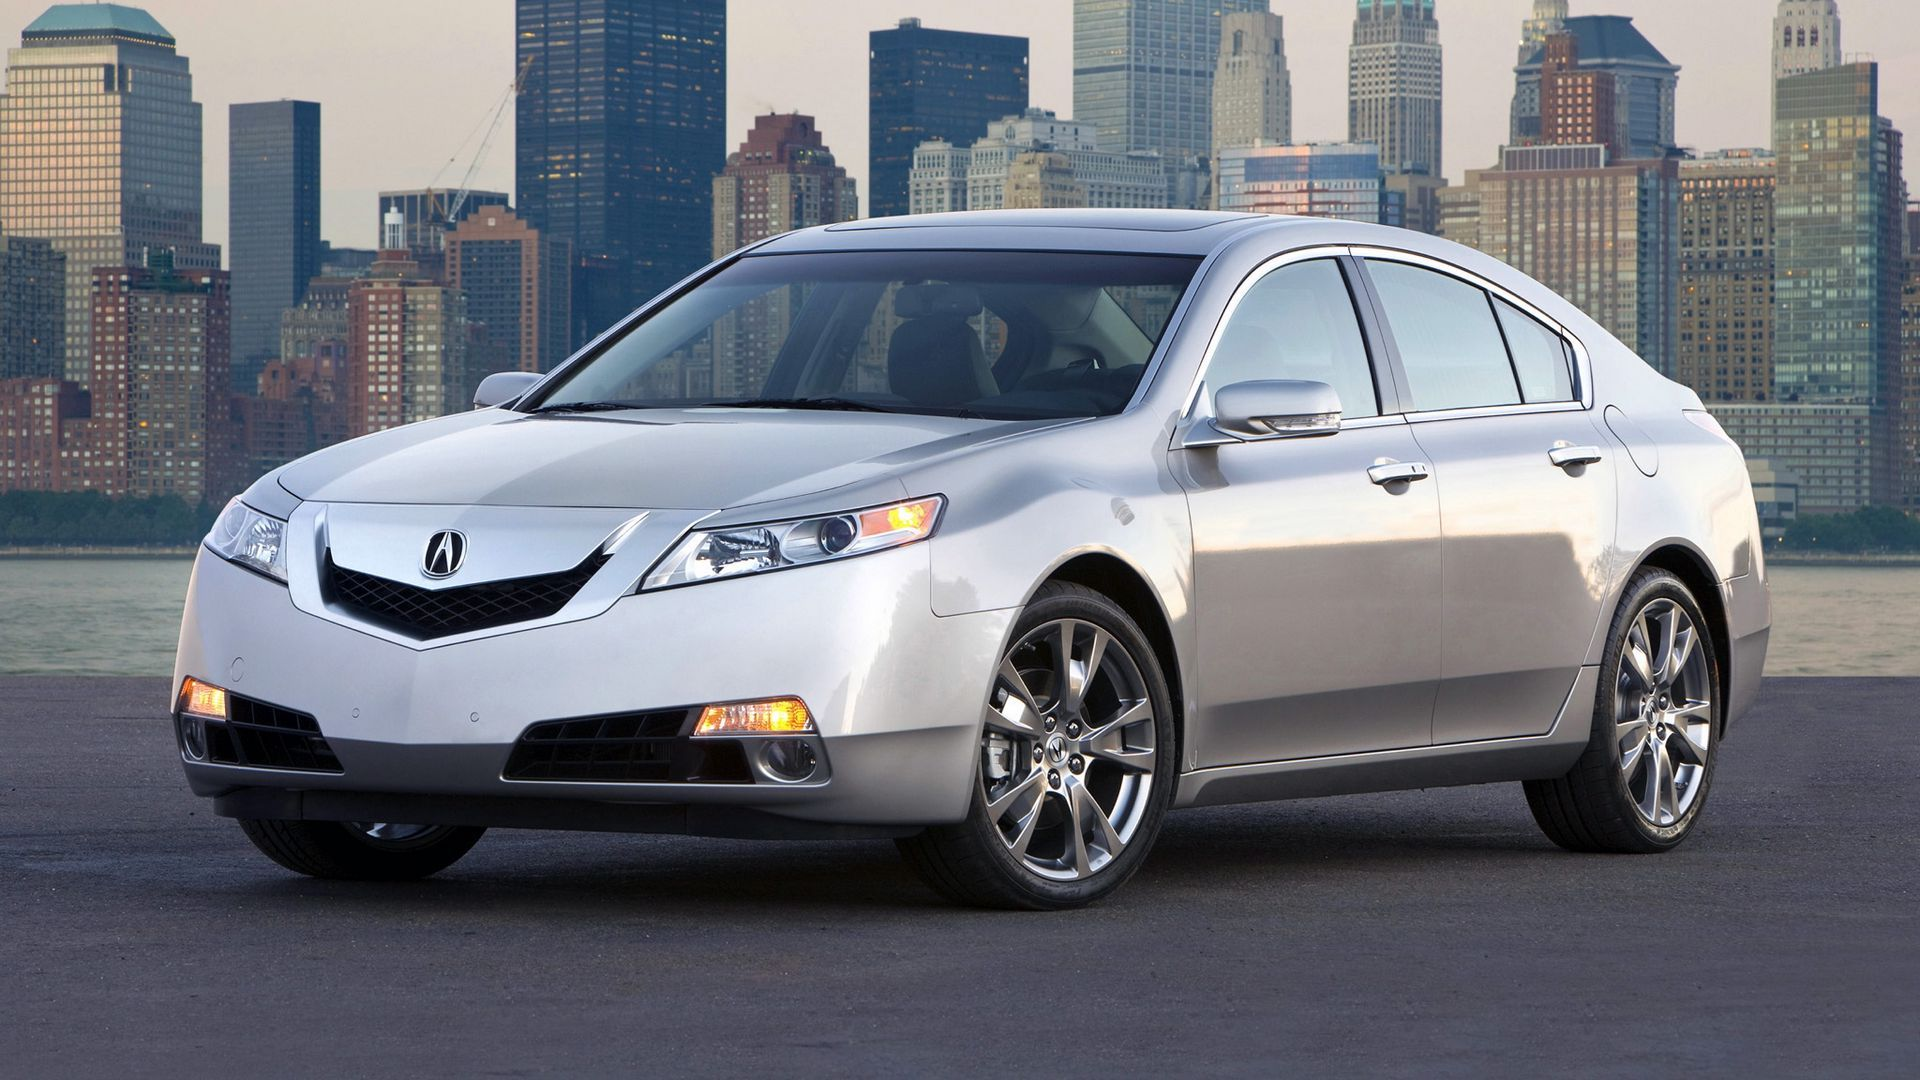 Wallpaper Silver Metallic Cars City Acura Water 2008 Front View Style Tl